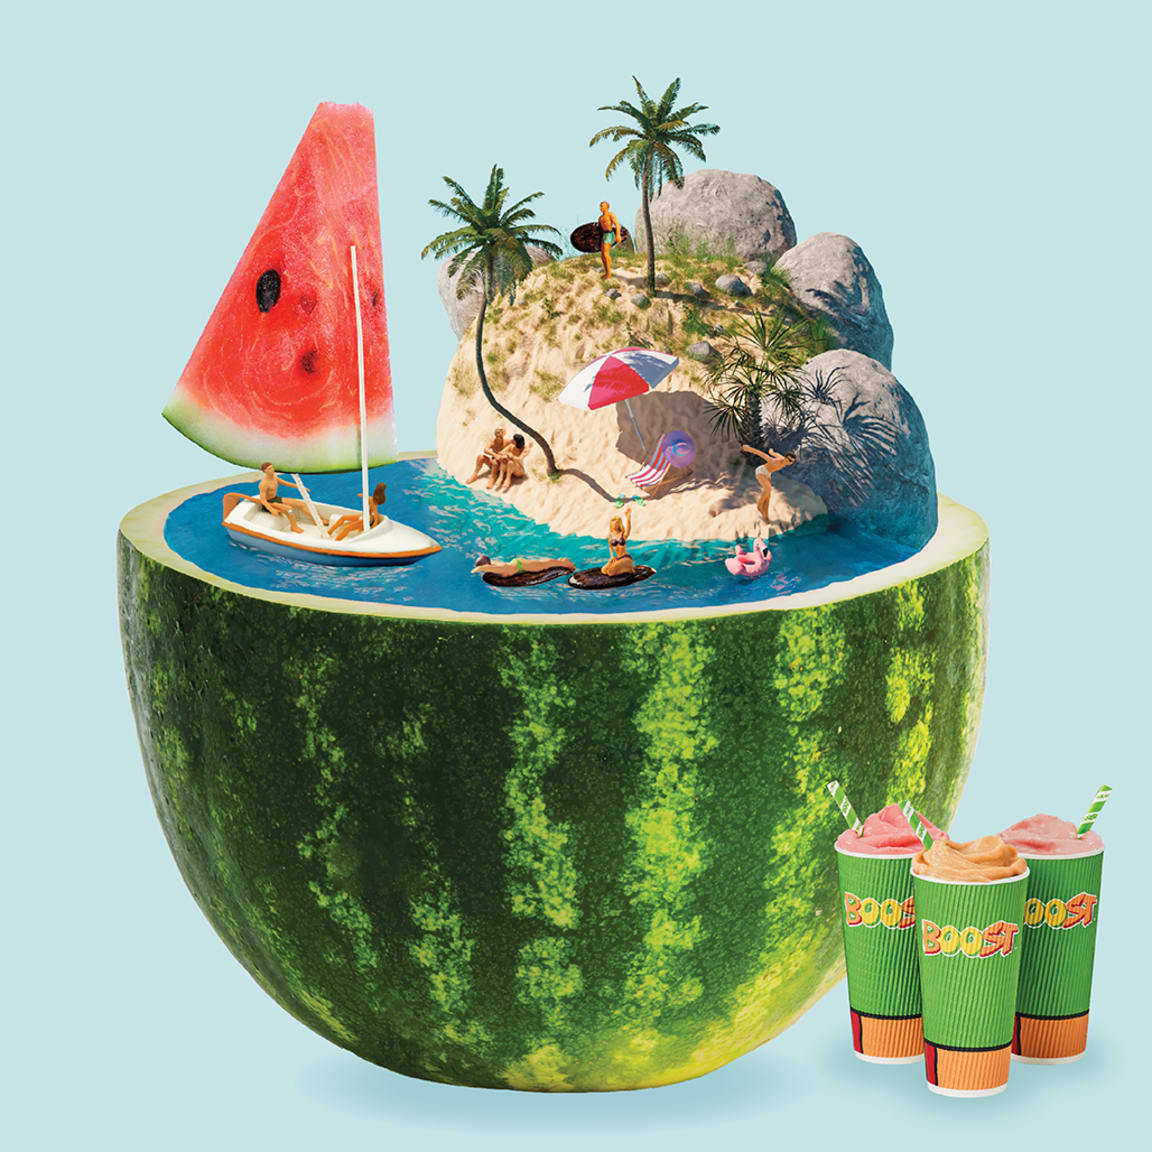 Boost Juice: Time to dive in to summer early